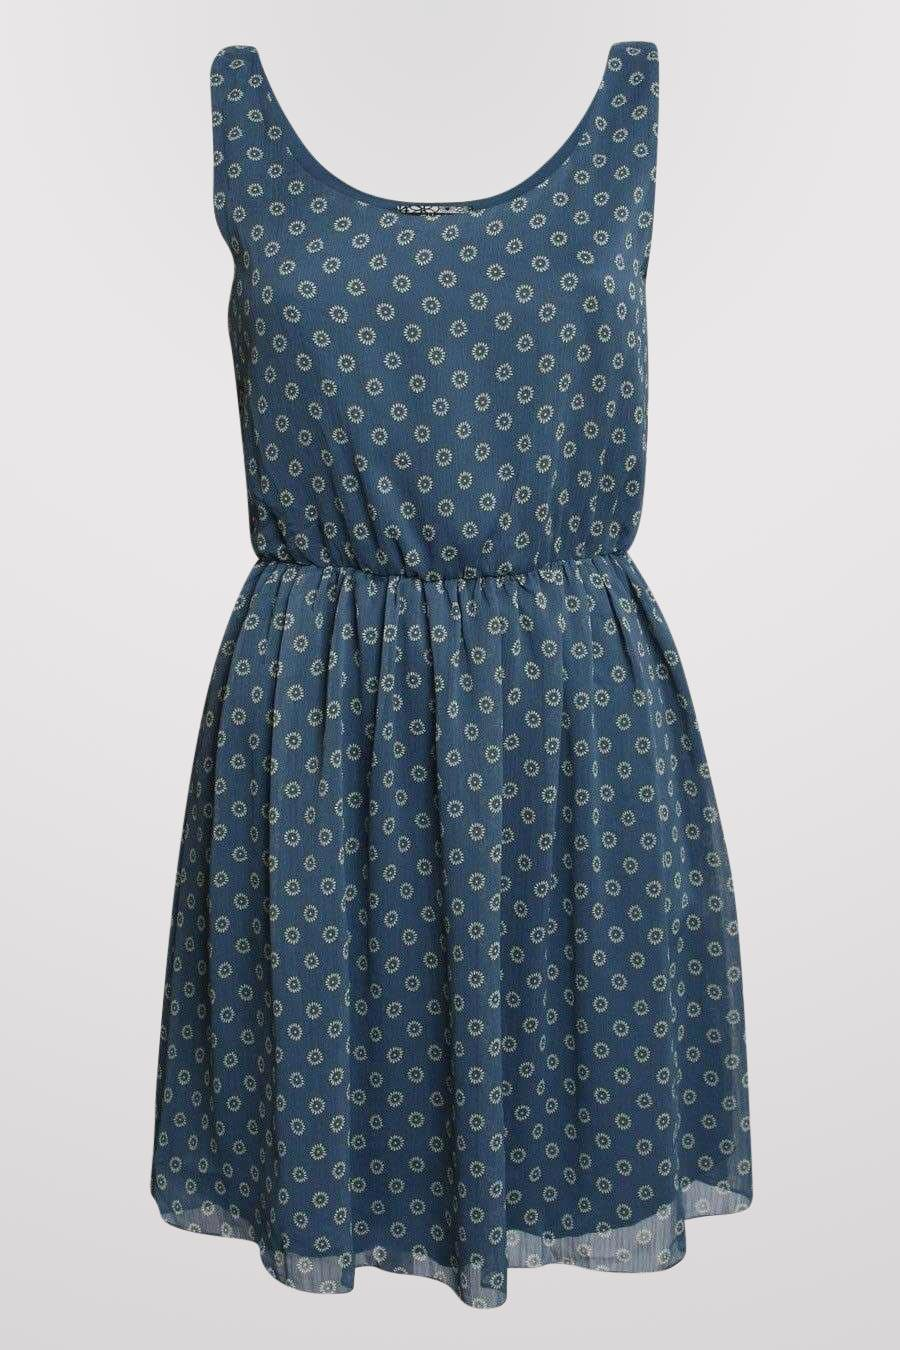 Floral Print Chiffon Skater Dress in Blue FRONT